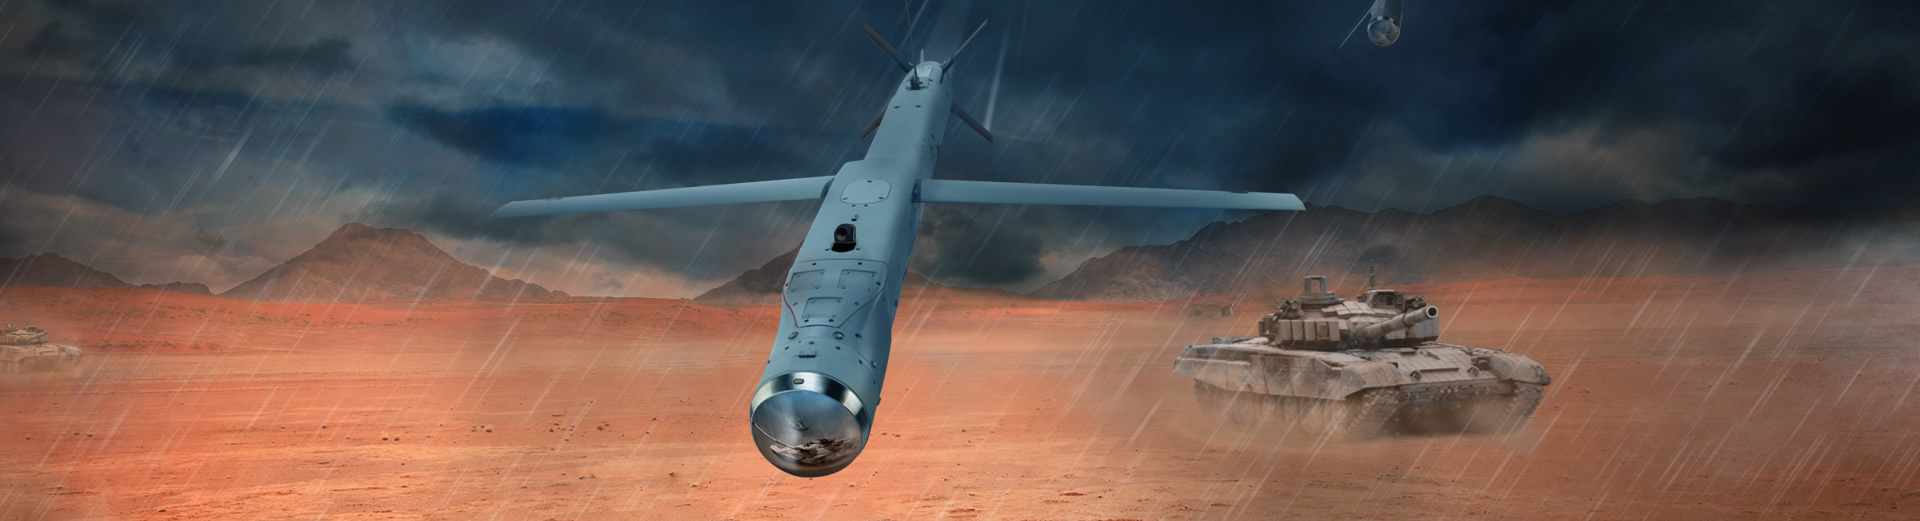 Raytheon : Darkness doesn't damper the SDB II weapon's ability to track moving targets